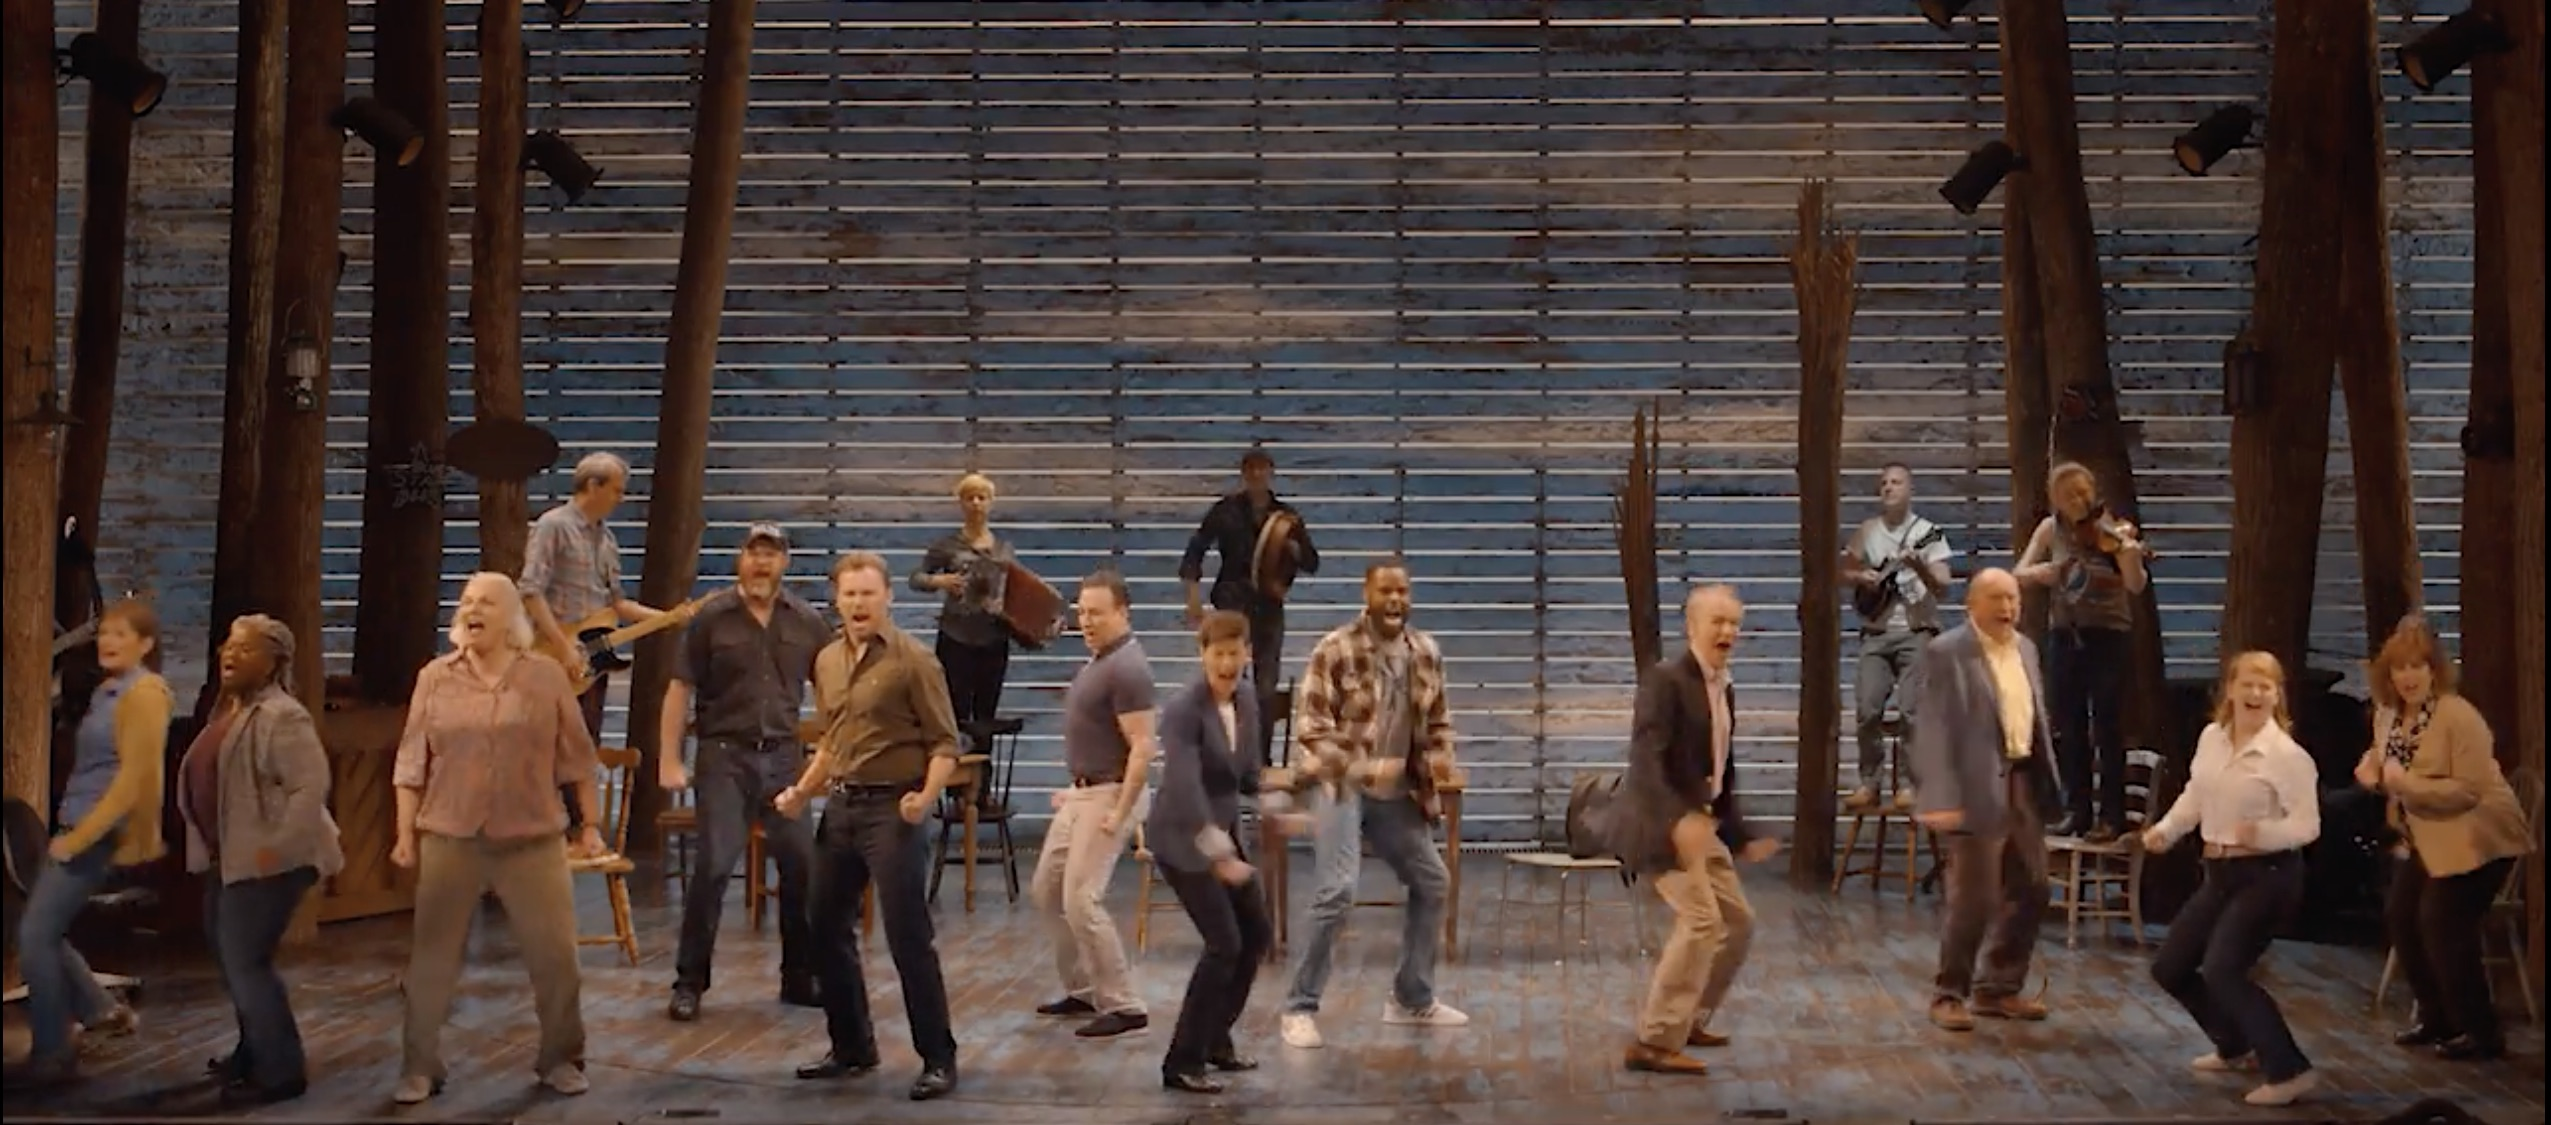 'Come From Away' Film Adaptation Gets Apple TV+ Premiere Date On Eve Of 9/11